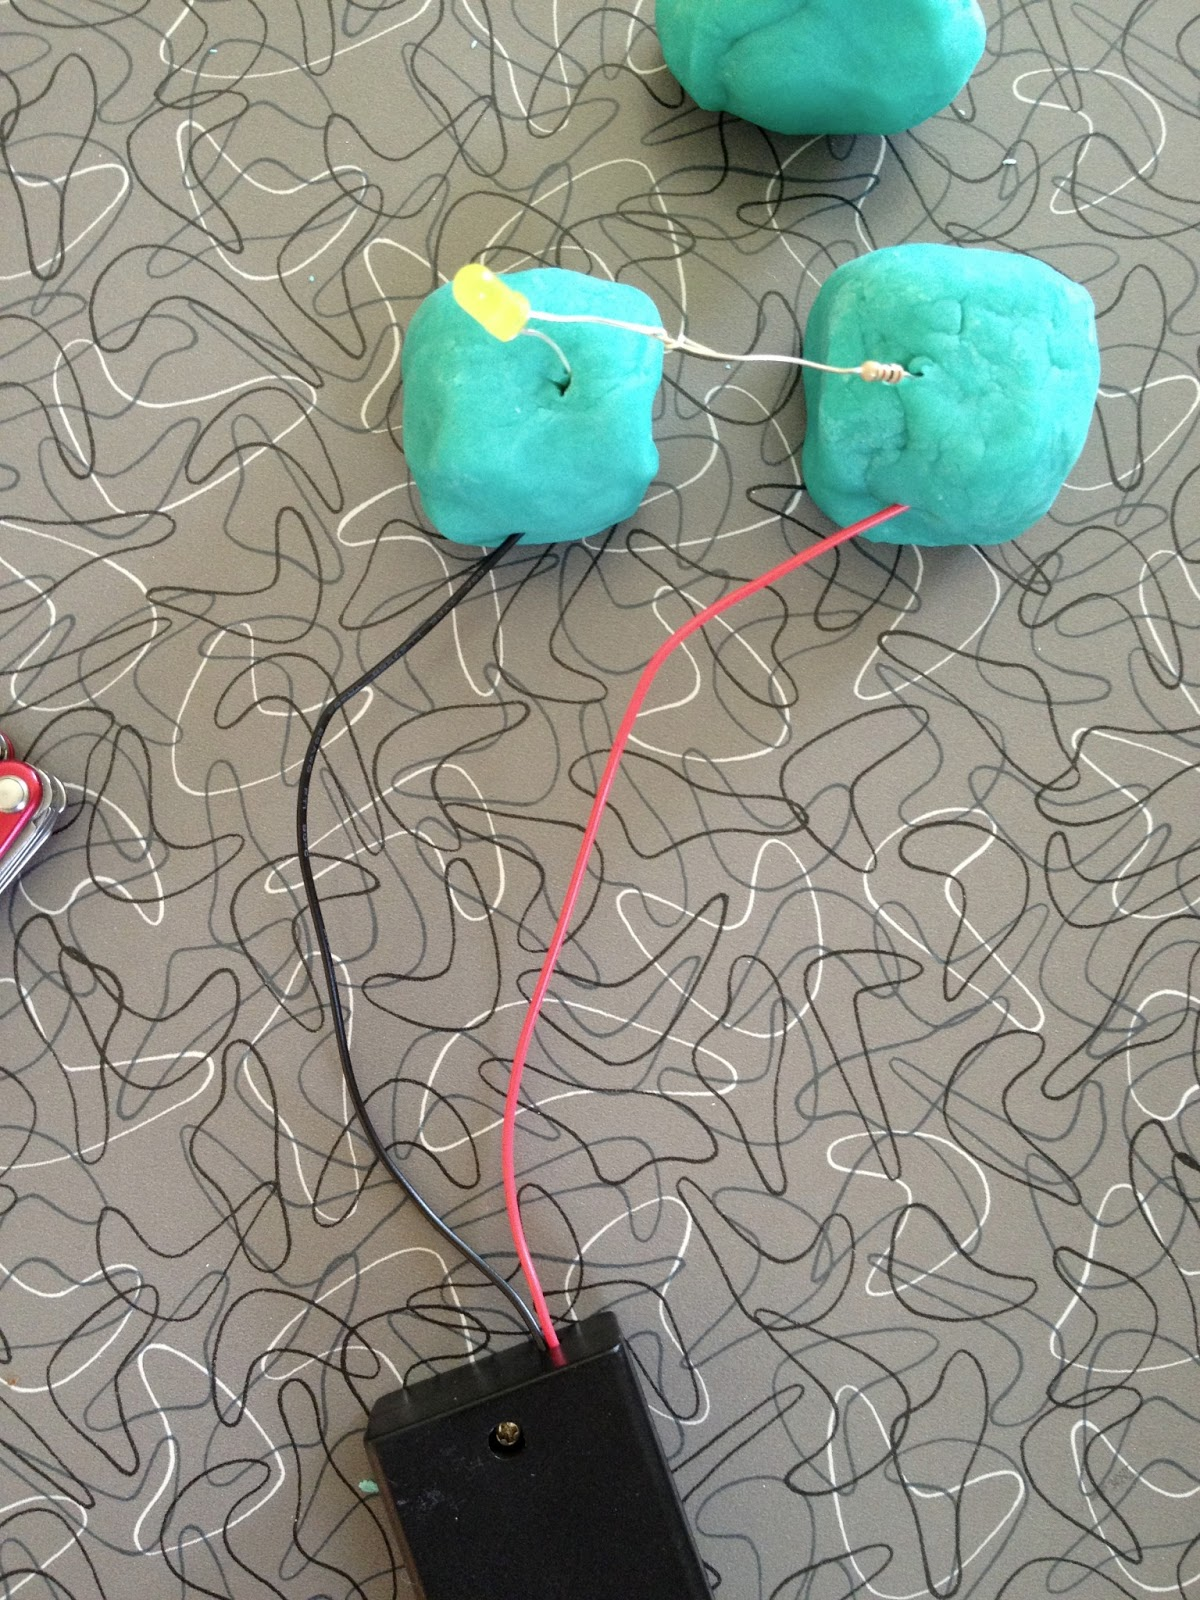 Squishy Circuits And Lessons In Failure For Science Four Lakes How To Make Batteries Dough After A Few Failures Involving Dead Poor Contact With The We Had Success Lighting Up An Led Through